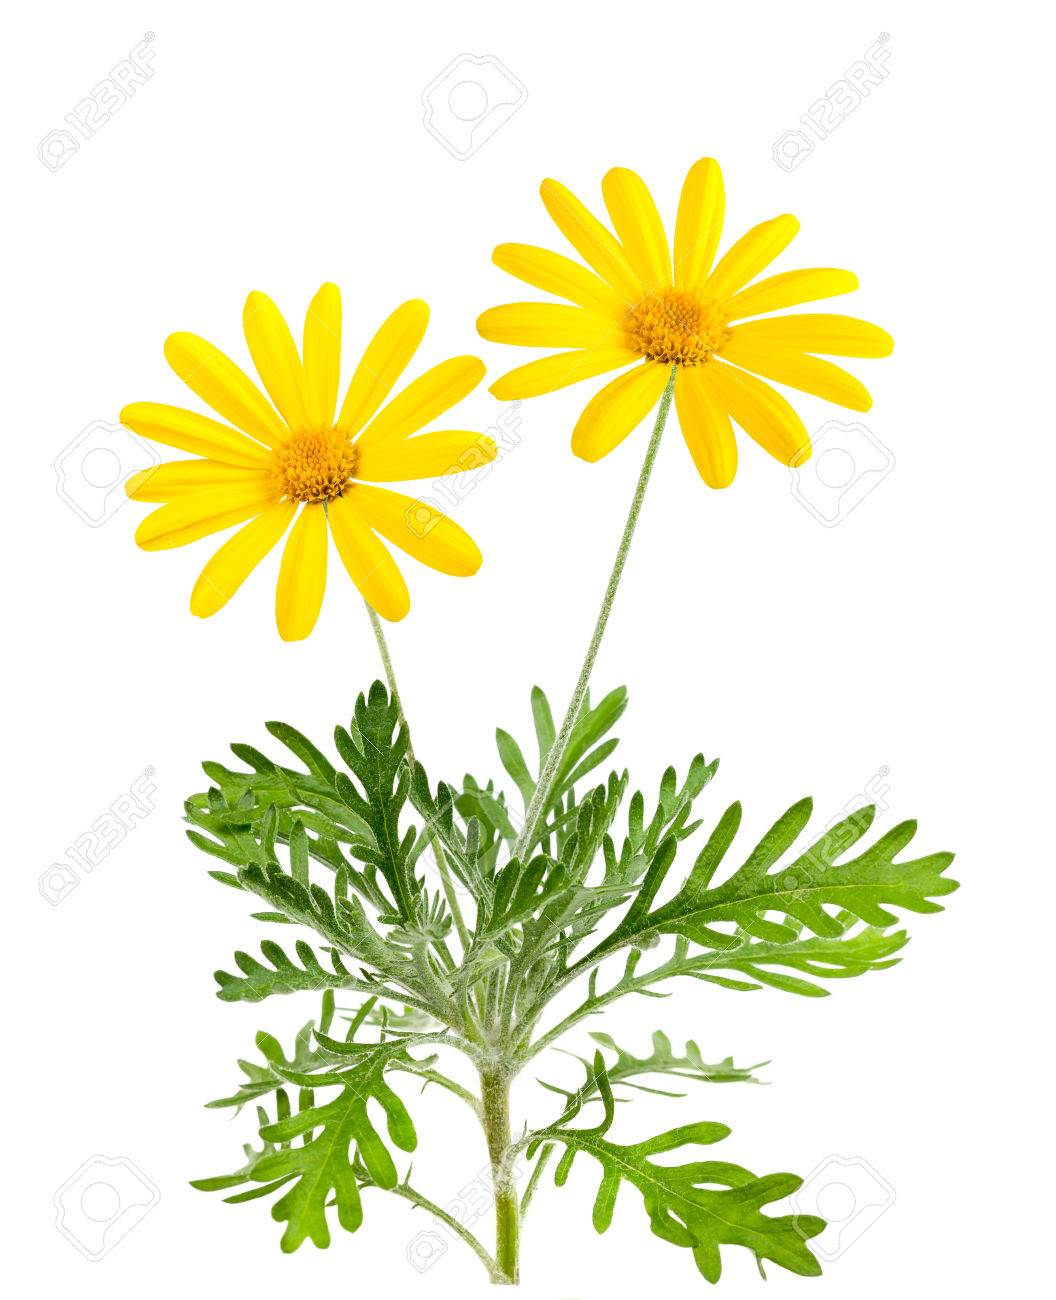 Yellow Daisies Flowers Isolated On White Background Stock Photo